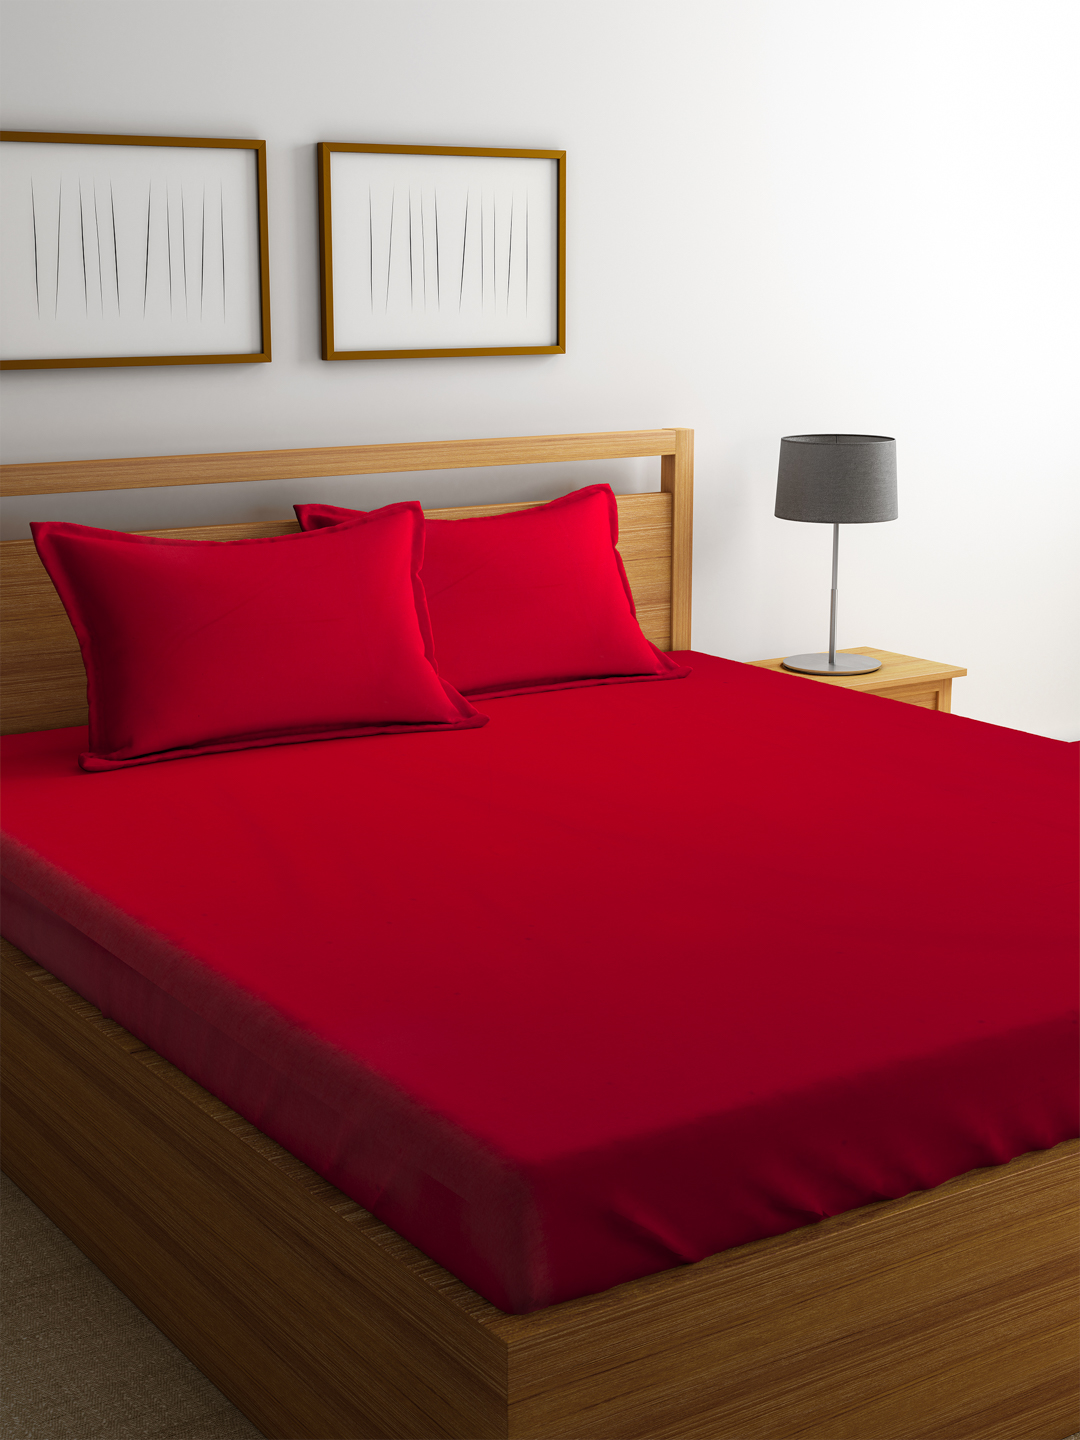 Portico Percale Cotton Double Bed Sheets in Red Colour by Portico